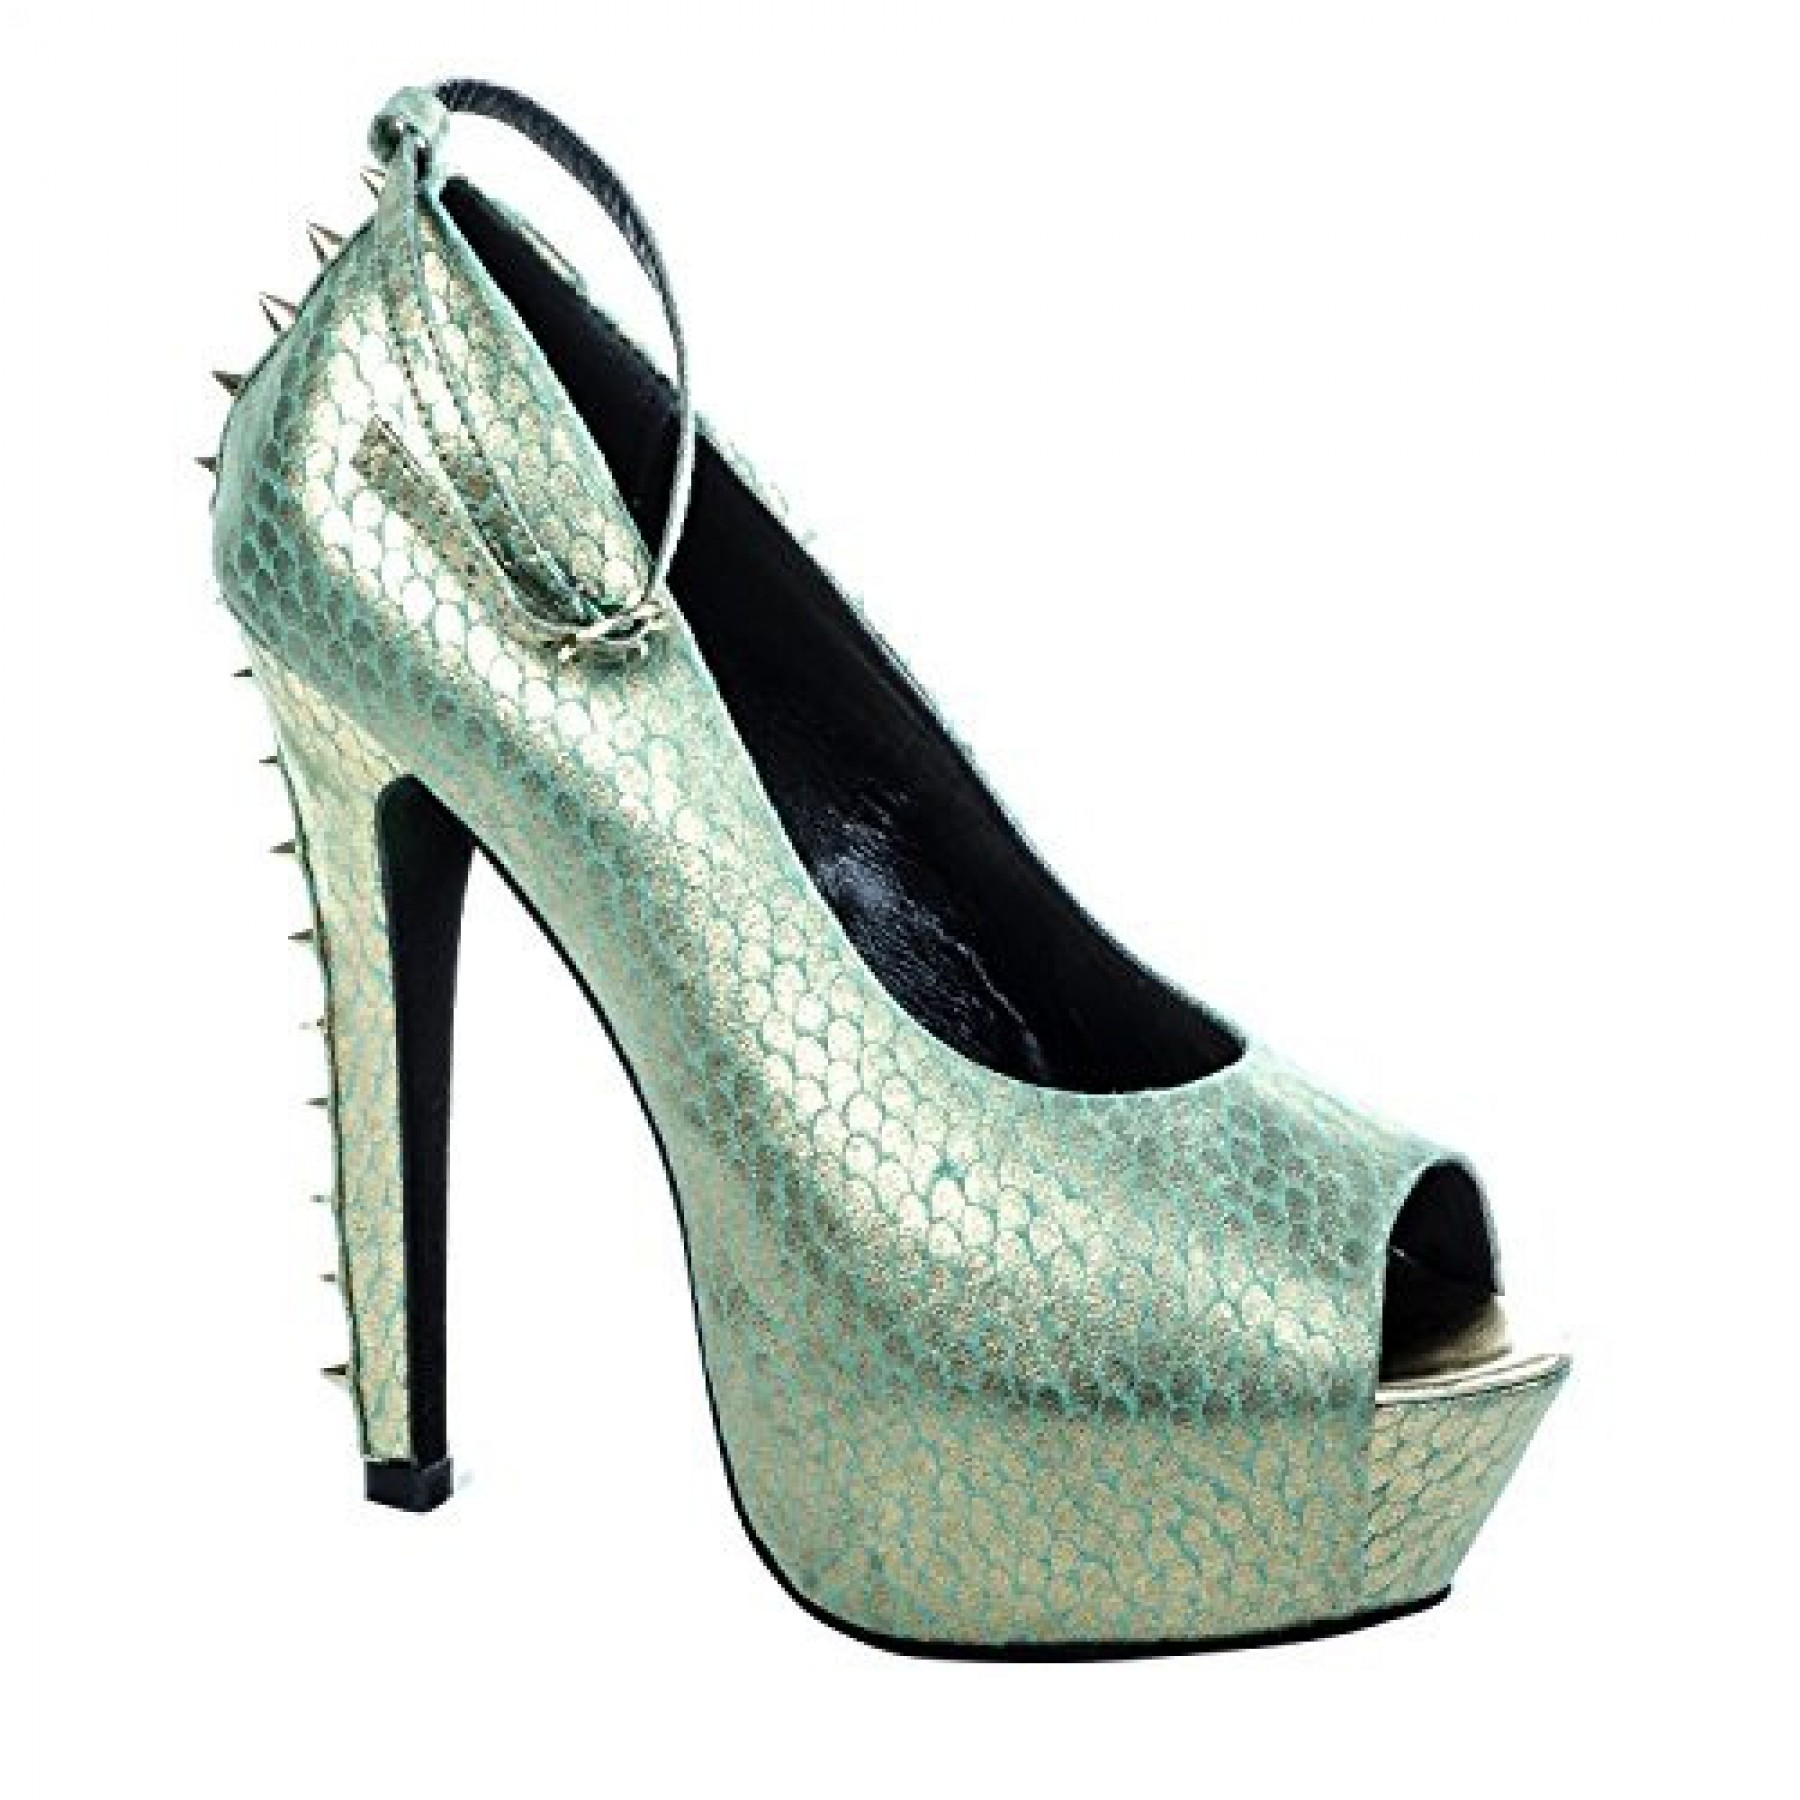 Women's Turquoise Gold Tullisa Manmade 6-inch Stiletto Peep Toe Metallic Print Pumps